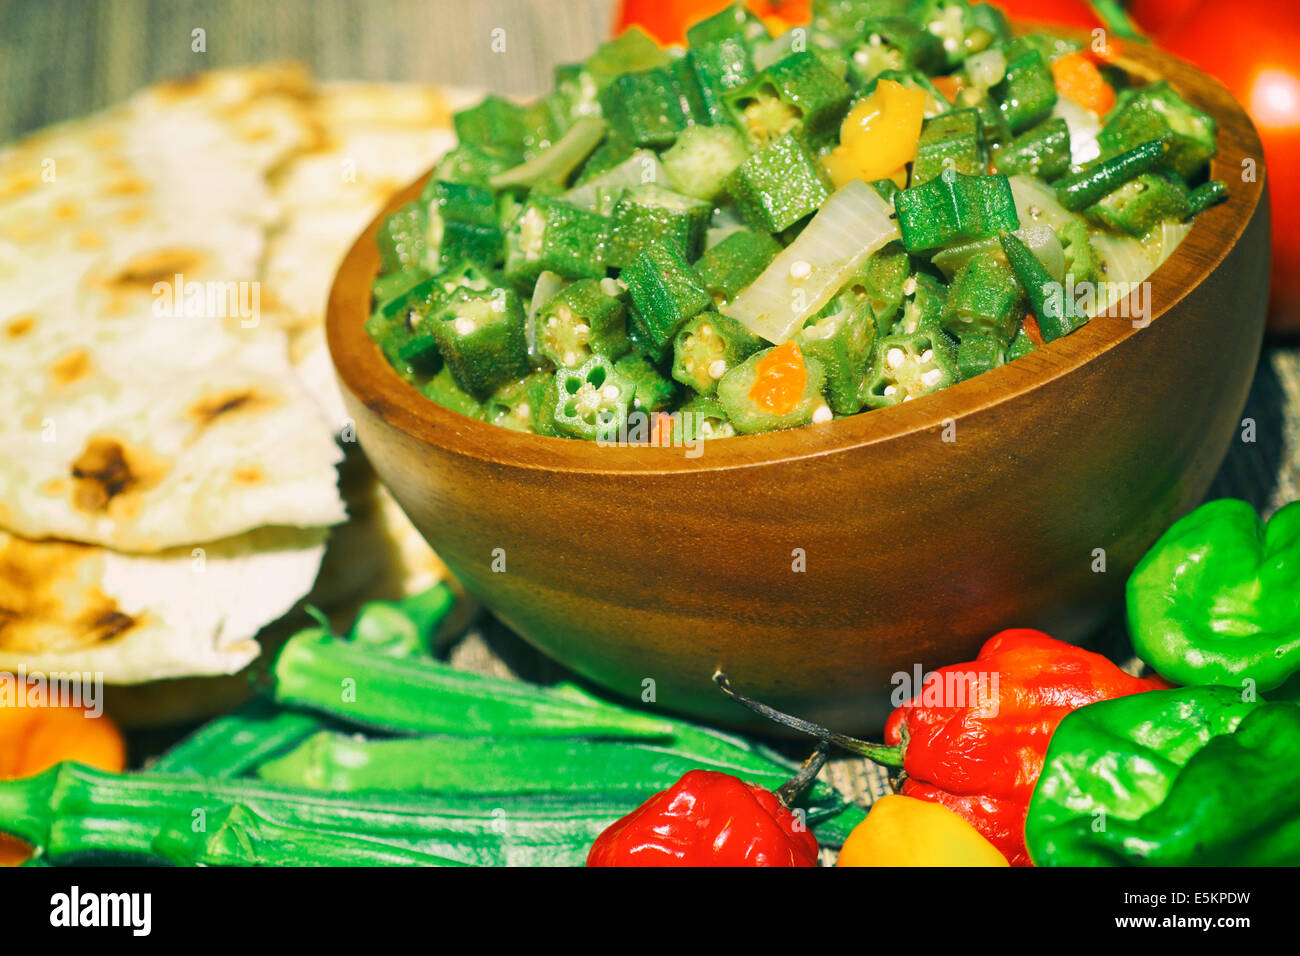 Cooked Okra Dish, with Naan Bread - Stock Image